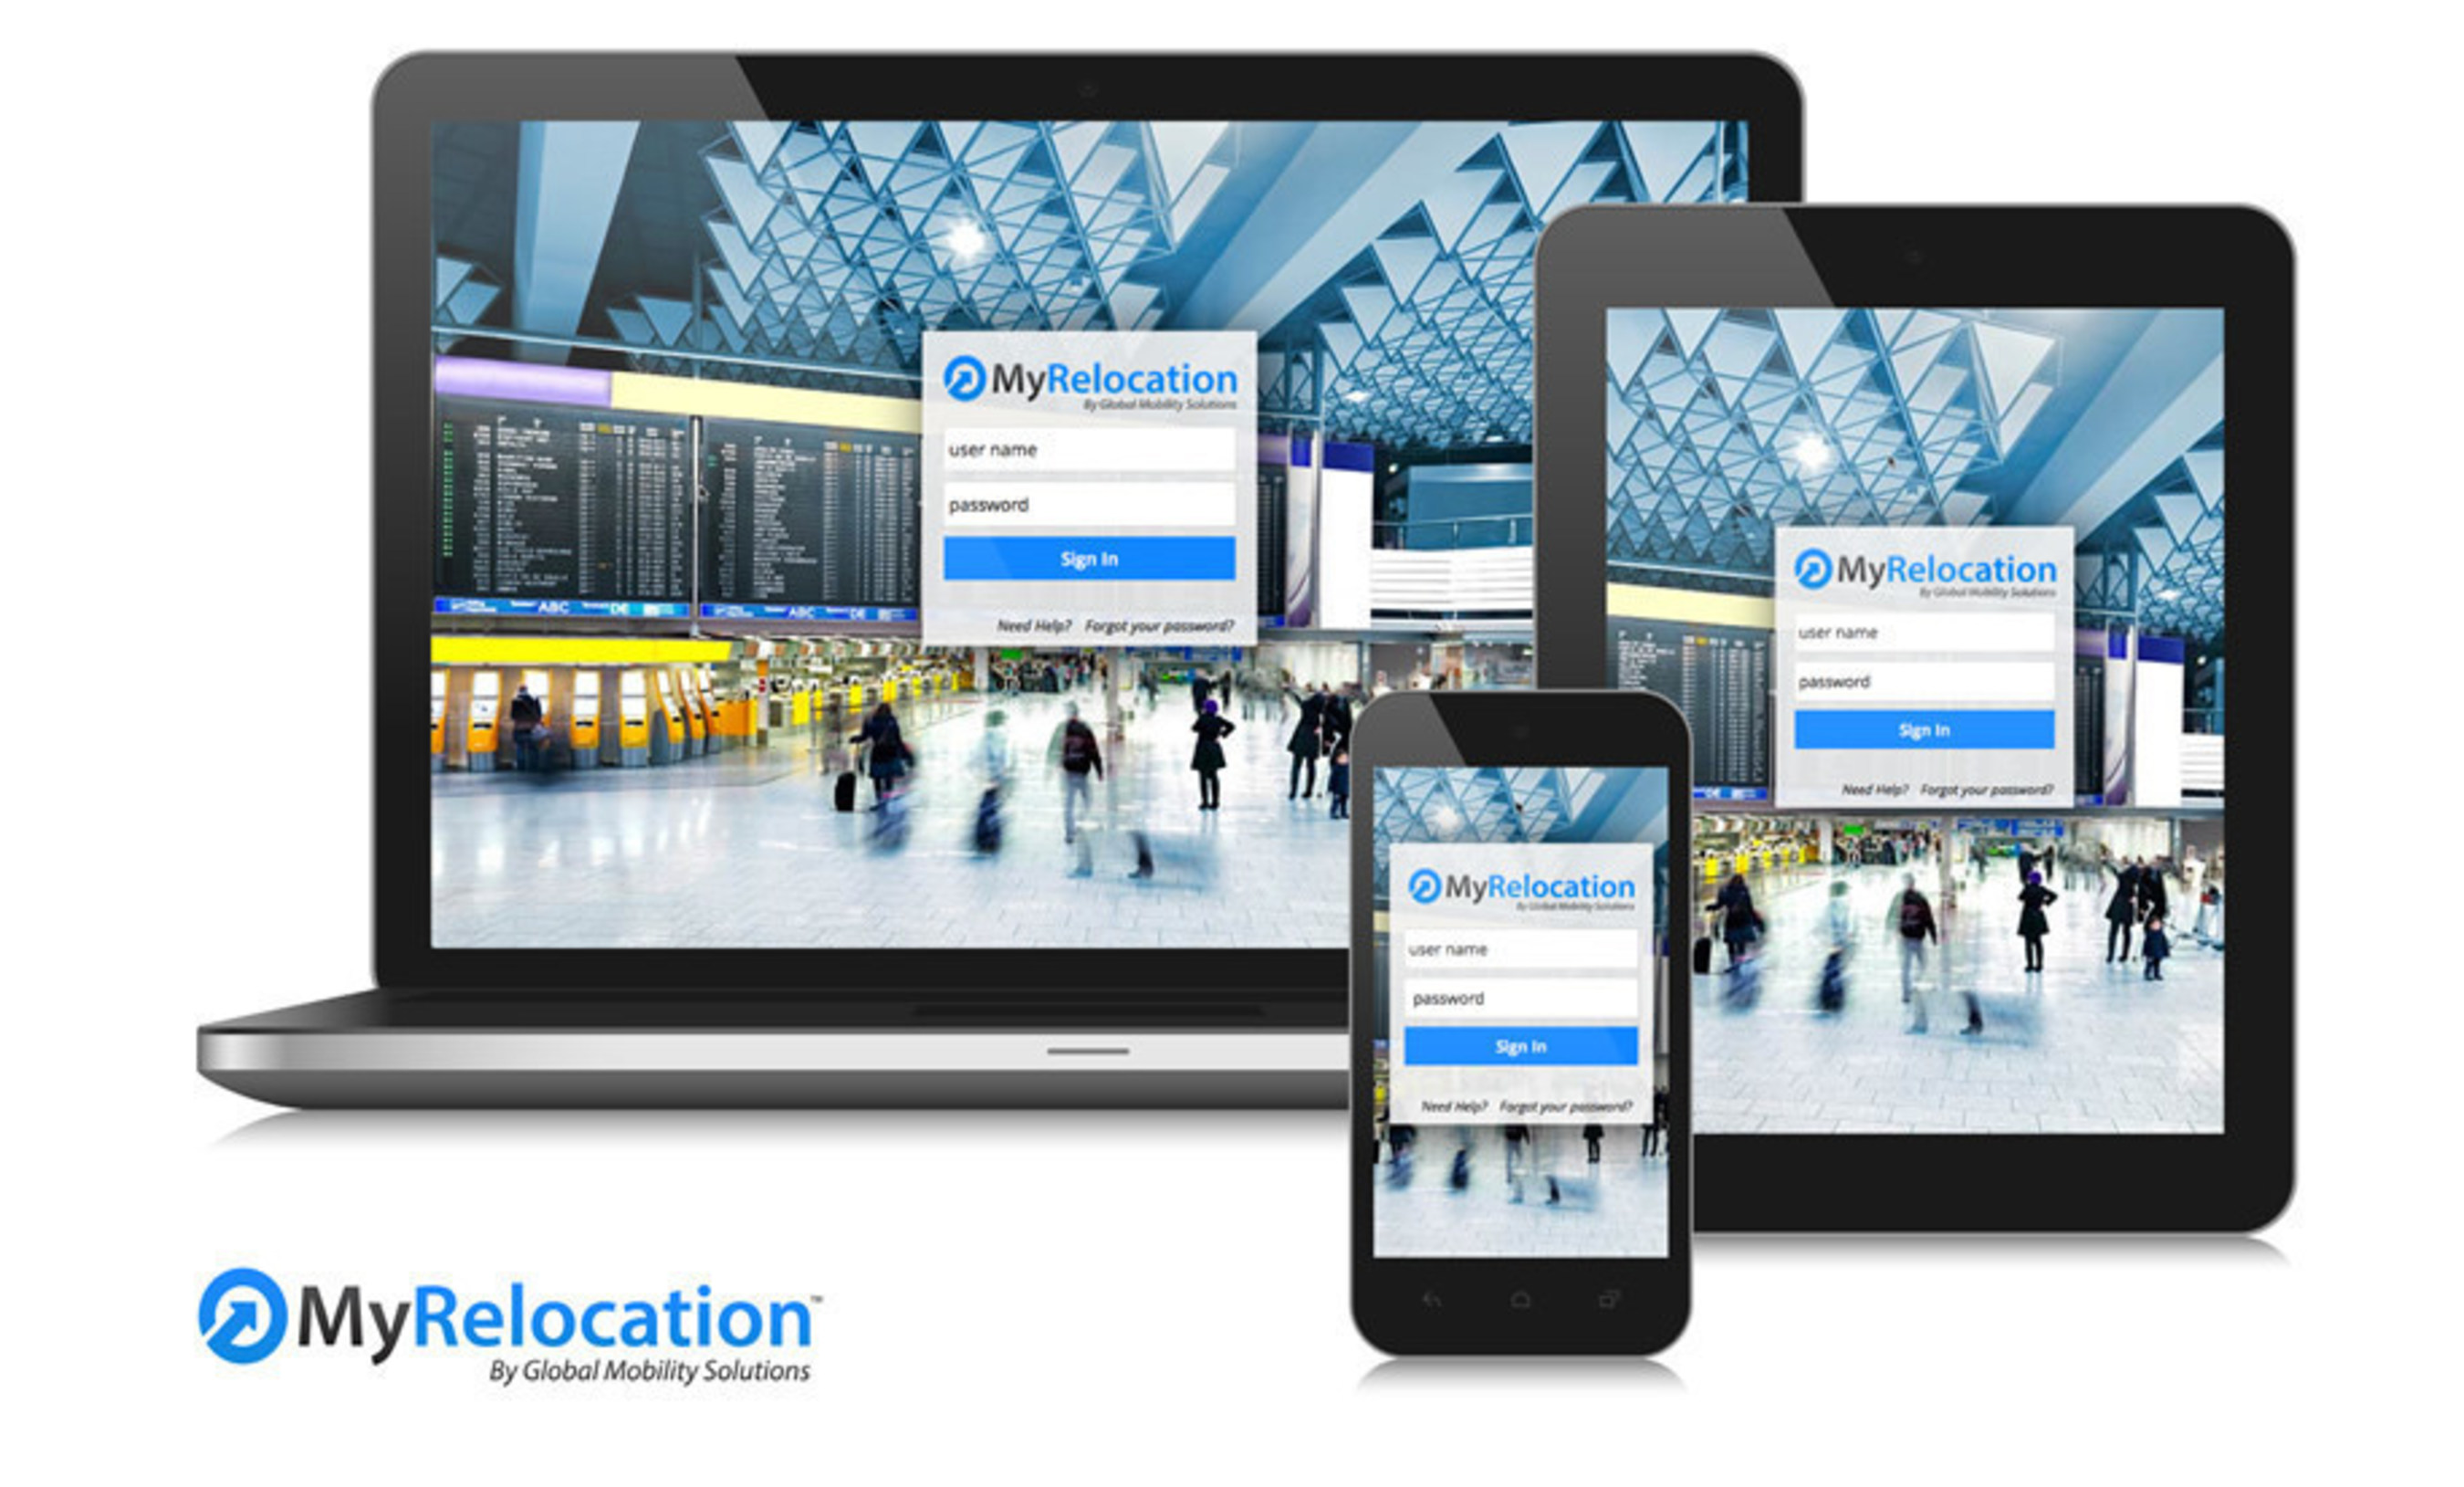 Global Mobility Solutions Unveils Powerful, Cloud-Based Technology MyRelocation